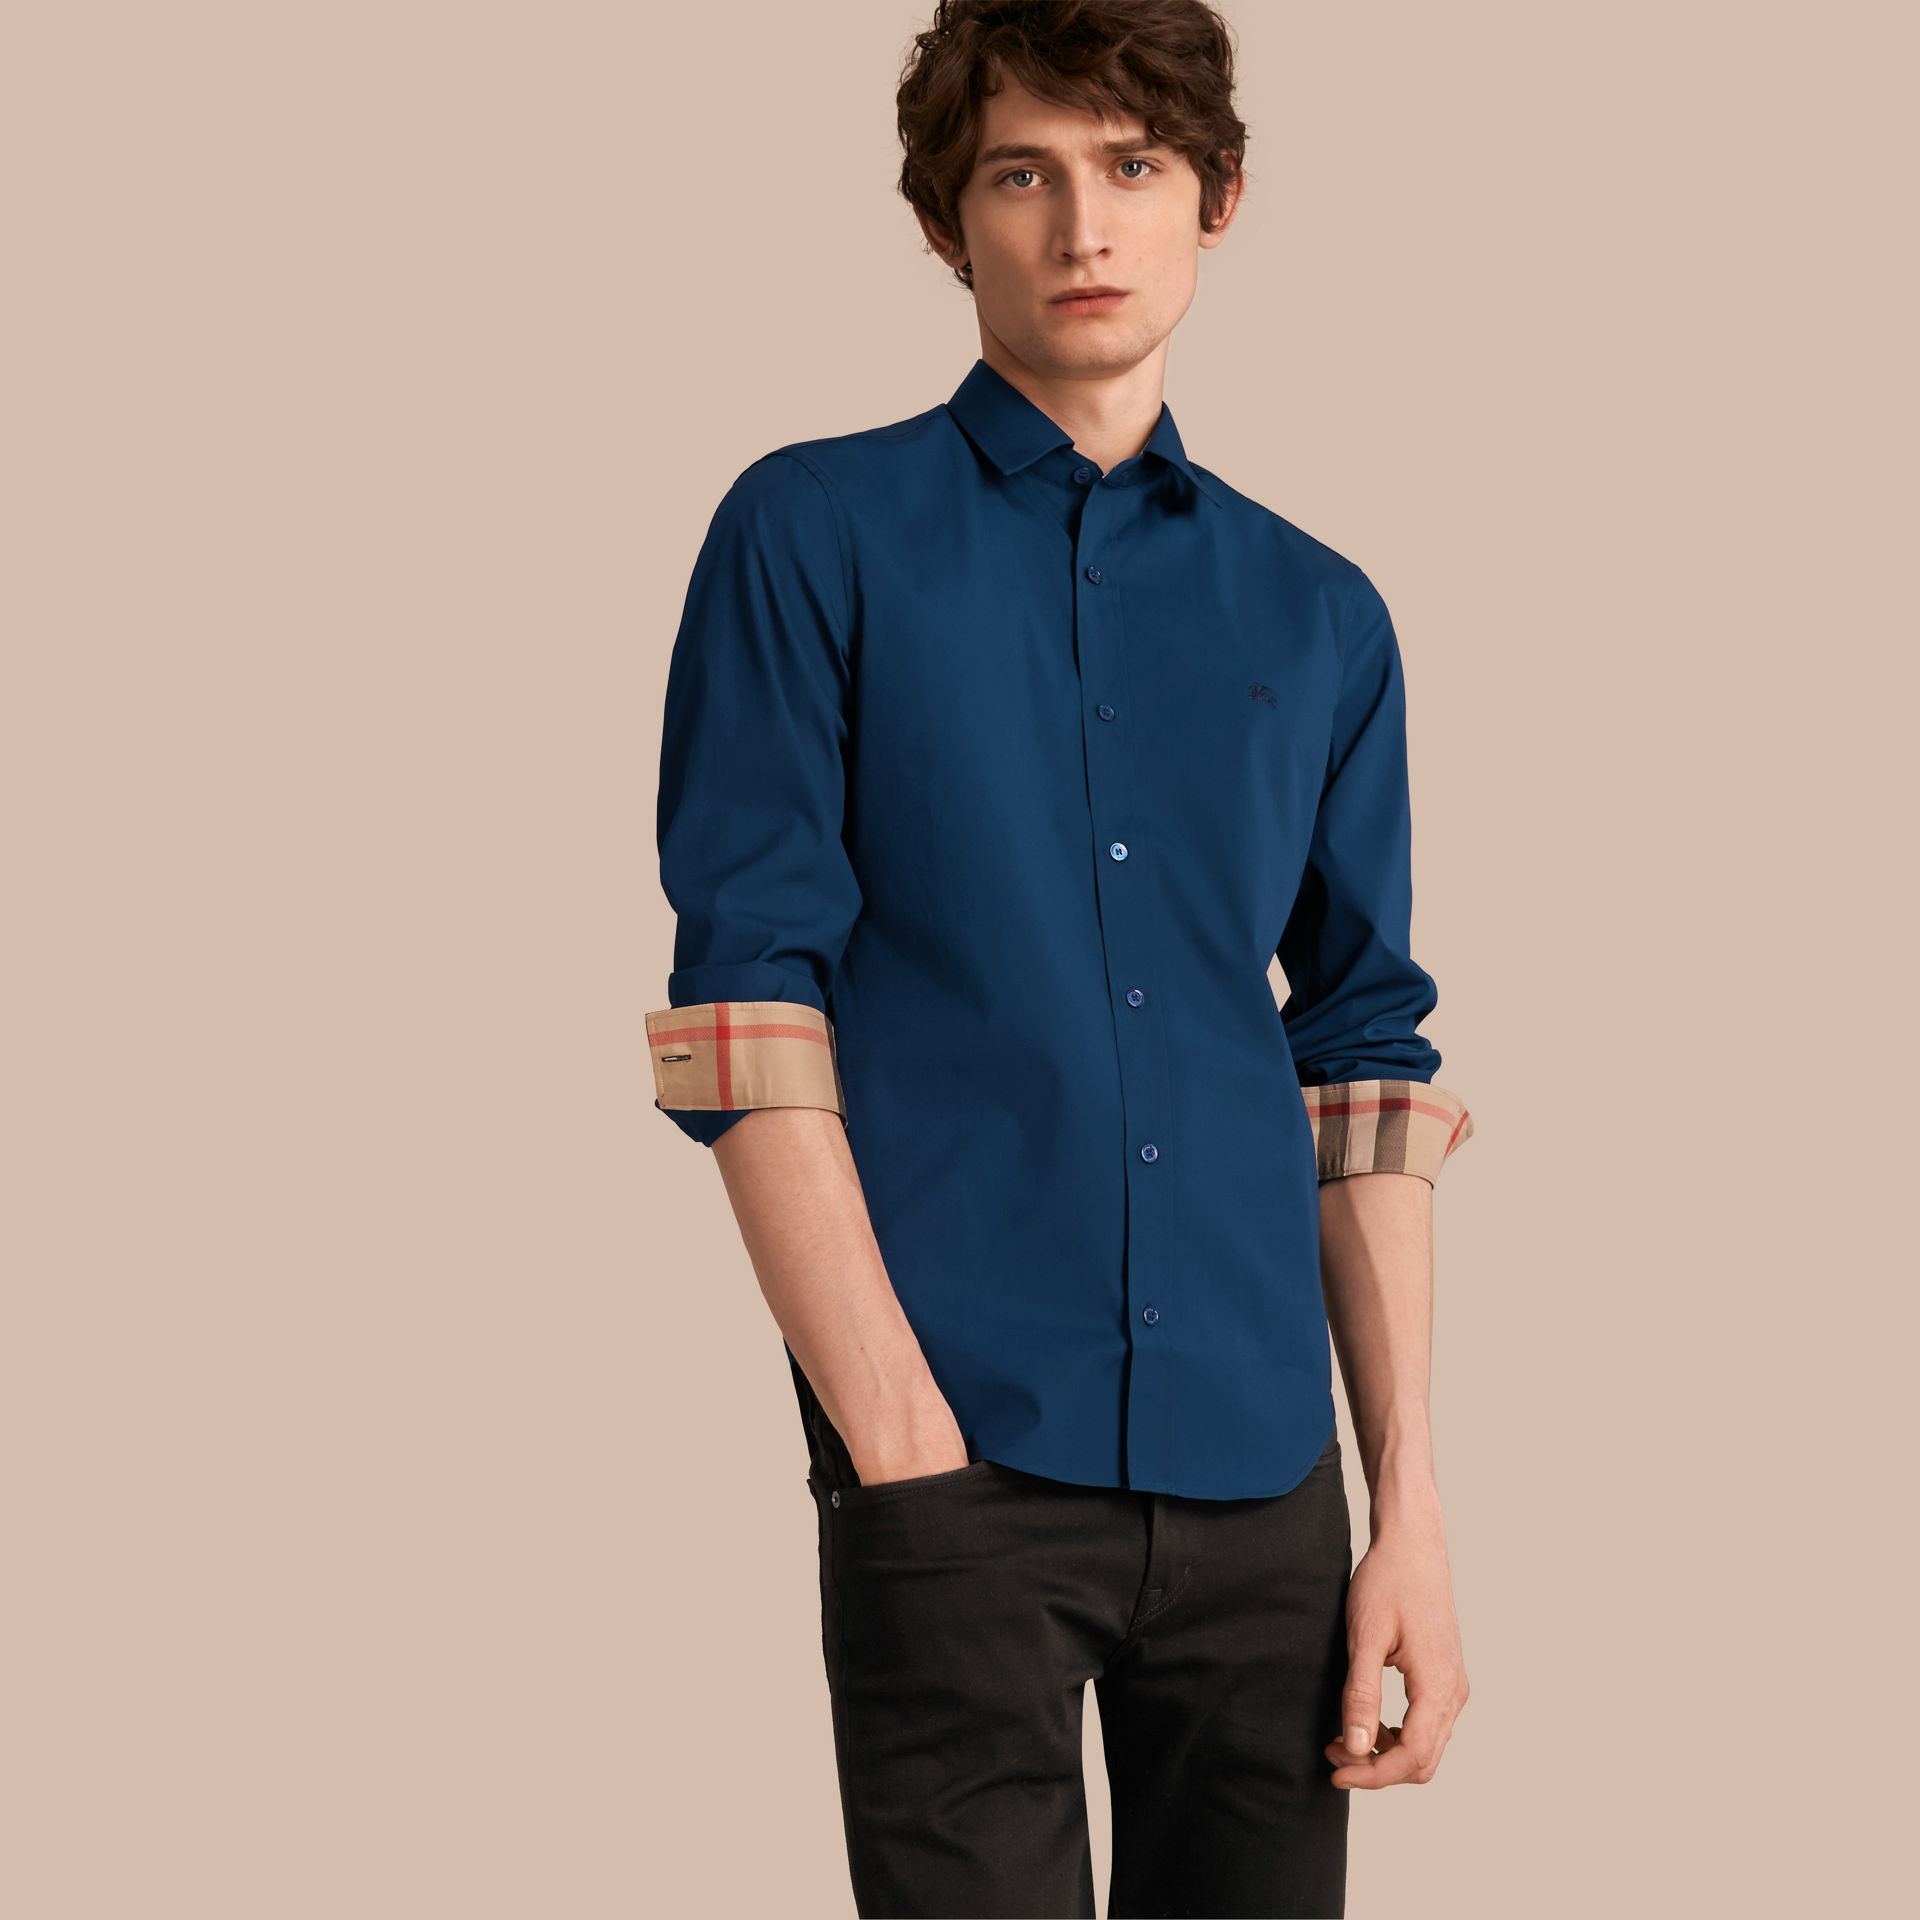 Deep teal blue Check Detail Stretch Cotton Poplin Shirt Deep Teal Blue - gallery image 1